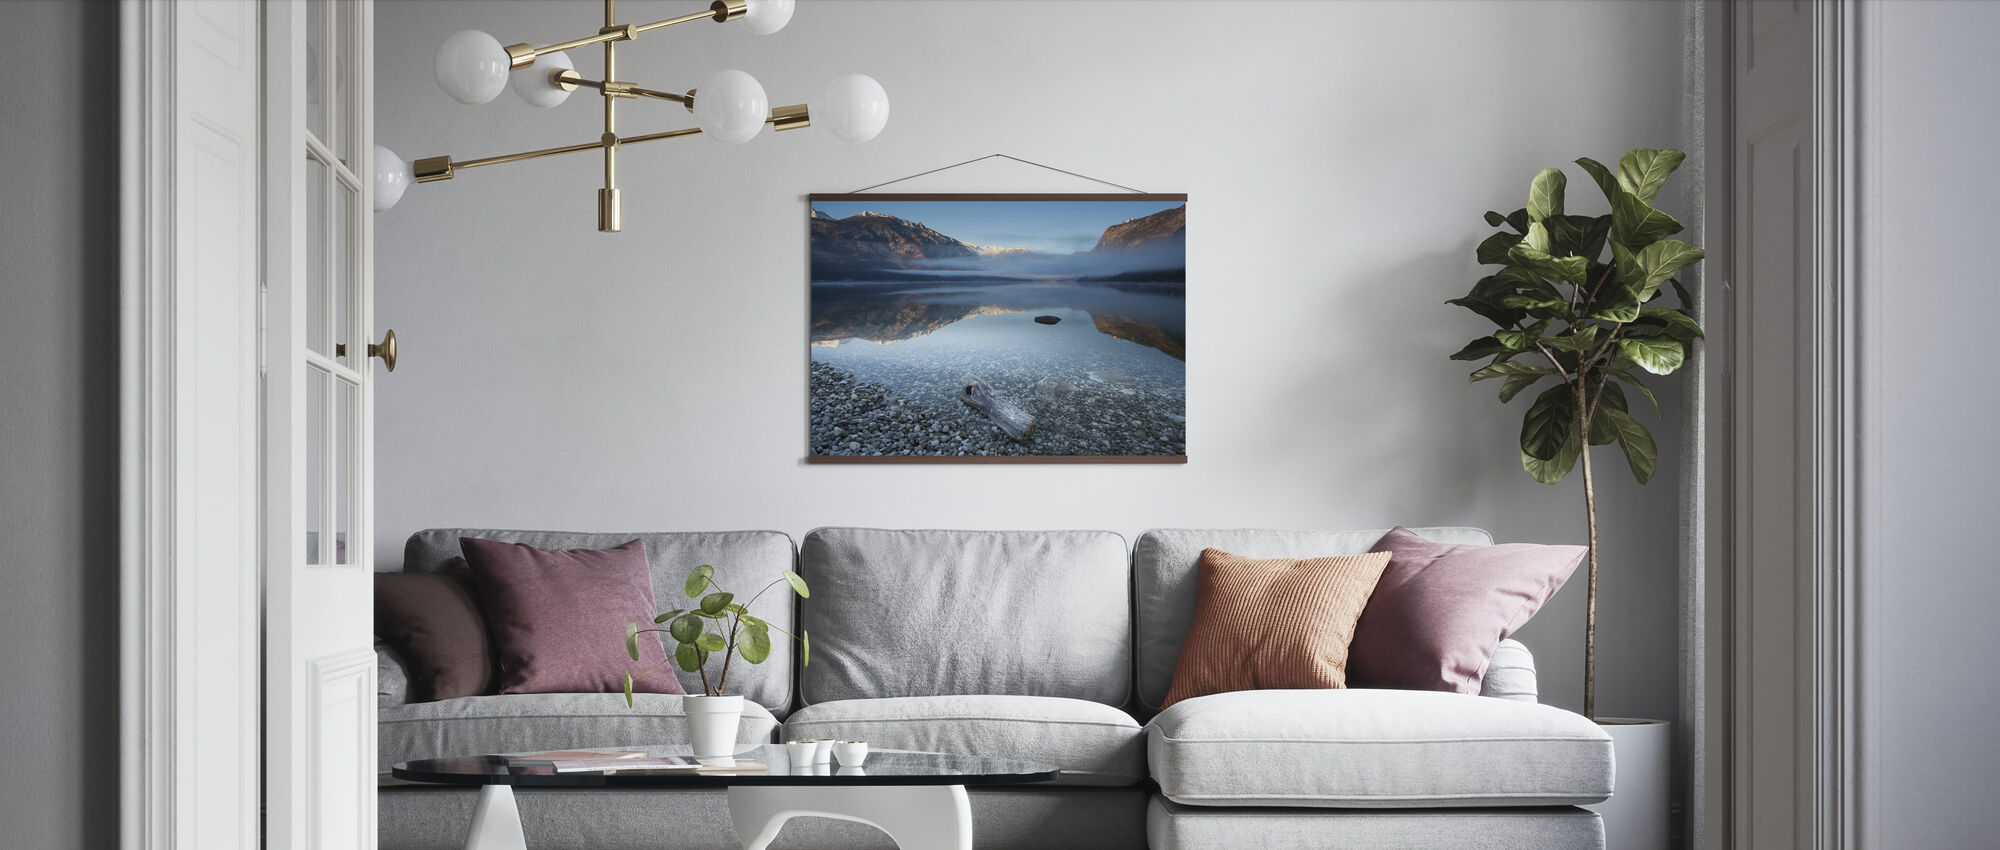 Bohinj's Tranquility - Poster - Living Room